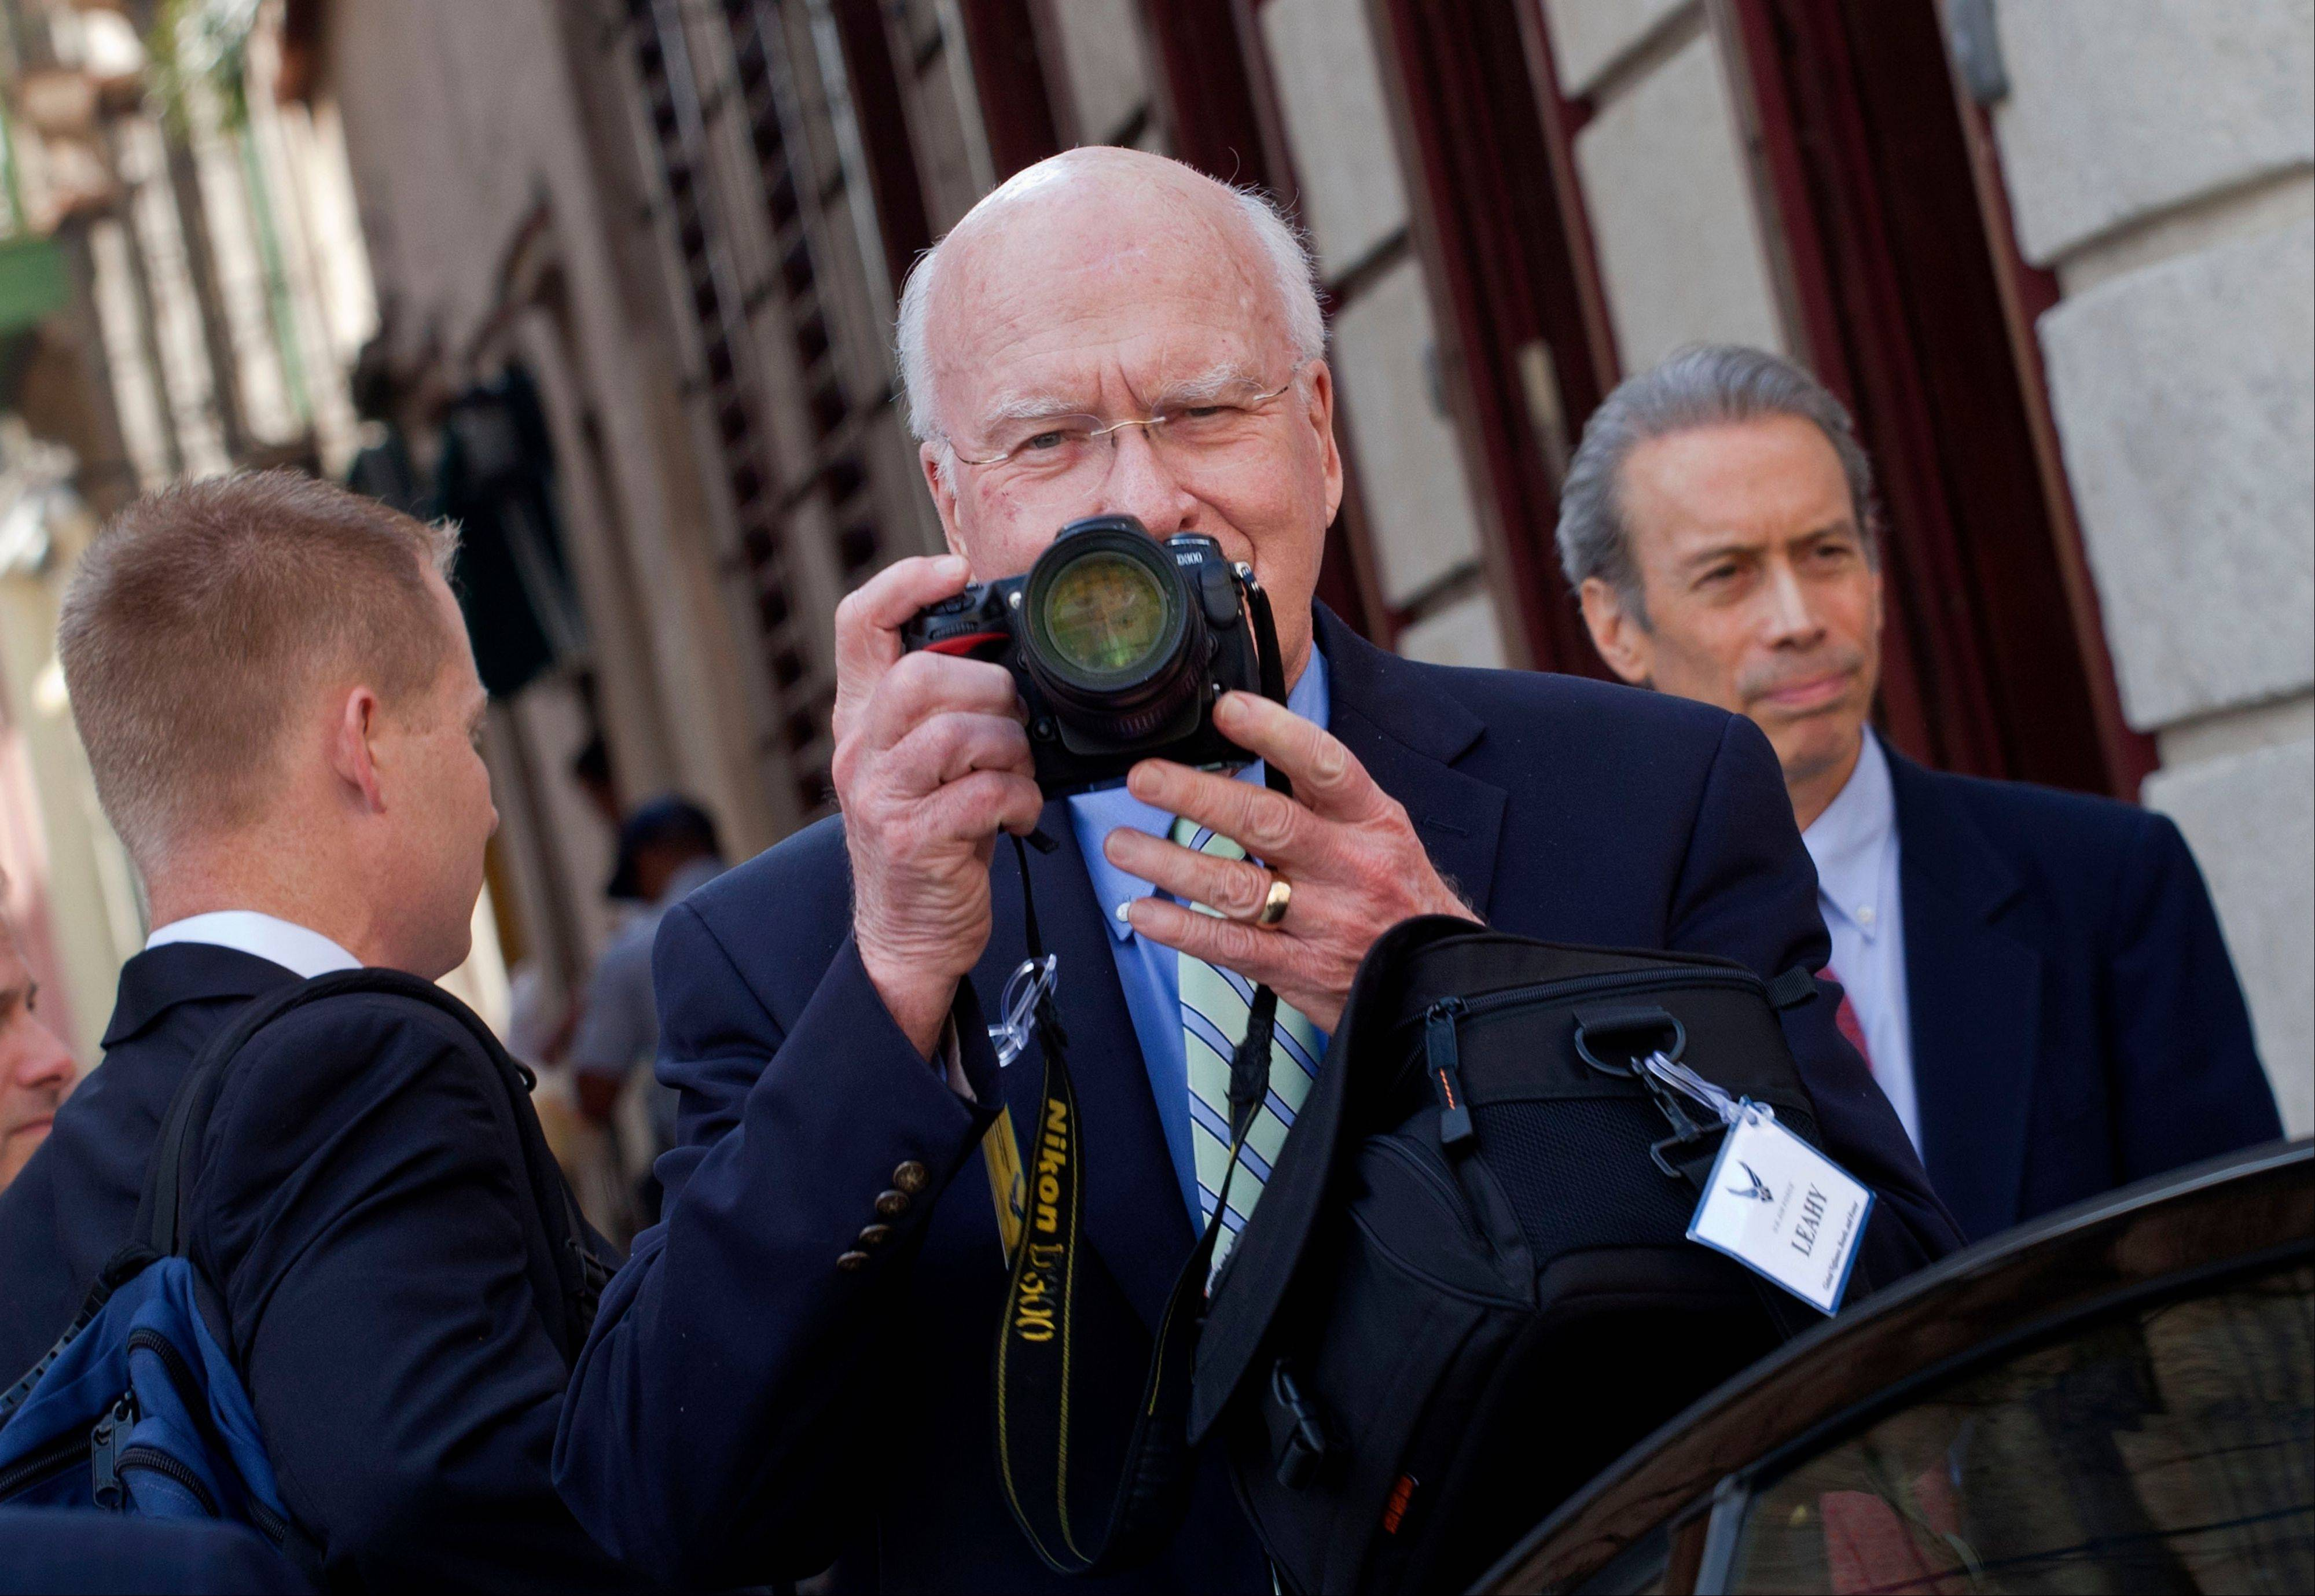 U.S. Sen. Patrick Leahy, center, takes pictures with his camera after a meeting with Cuba's Foreign Minister Bruno Rodriguez in Old Havana, Cuba, Tuesday, Feb. 19, 2013. U.S. lawmakers met Tuesday with Cuba's foreign minister and visited an American man whose detention and long sentence in Cuba has hampered efforts to improve ties between the countries.